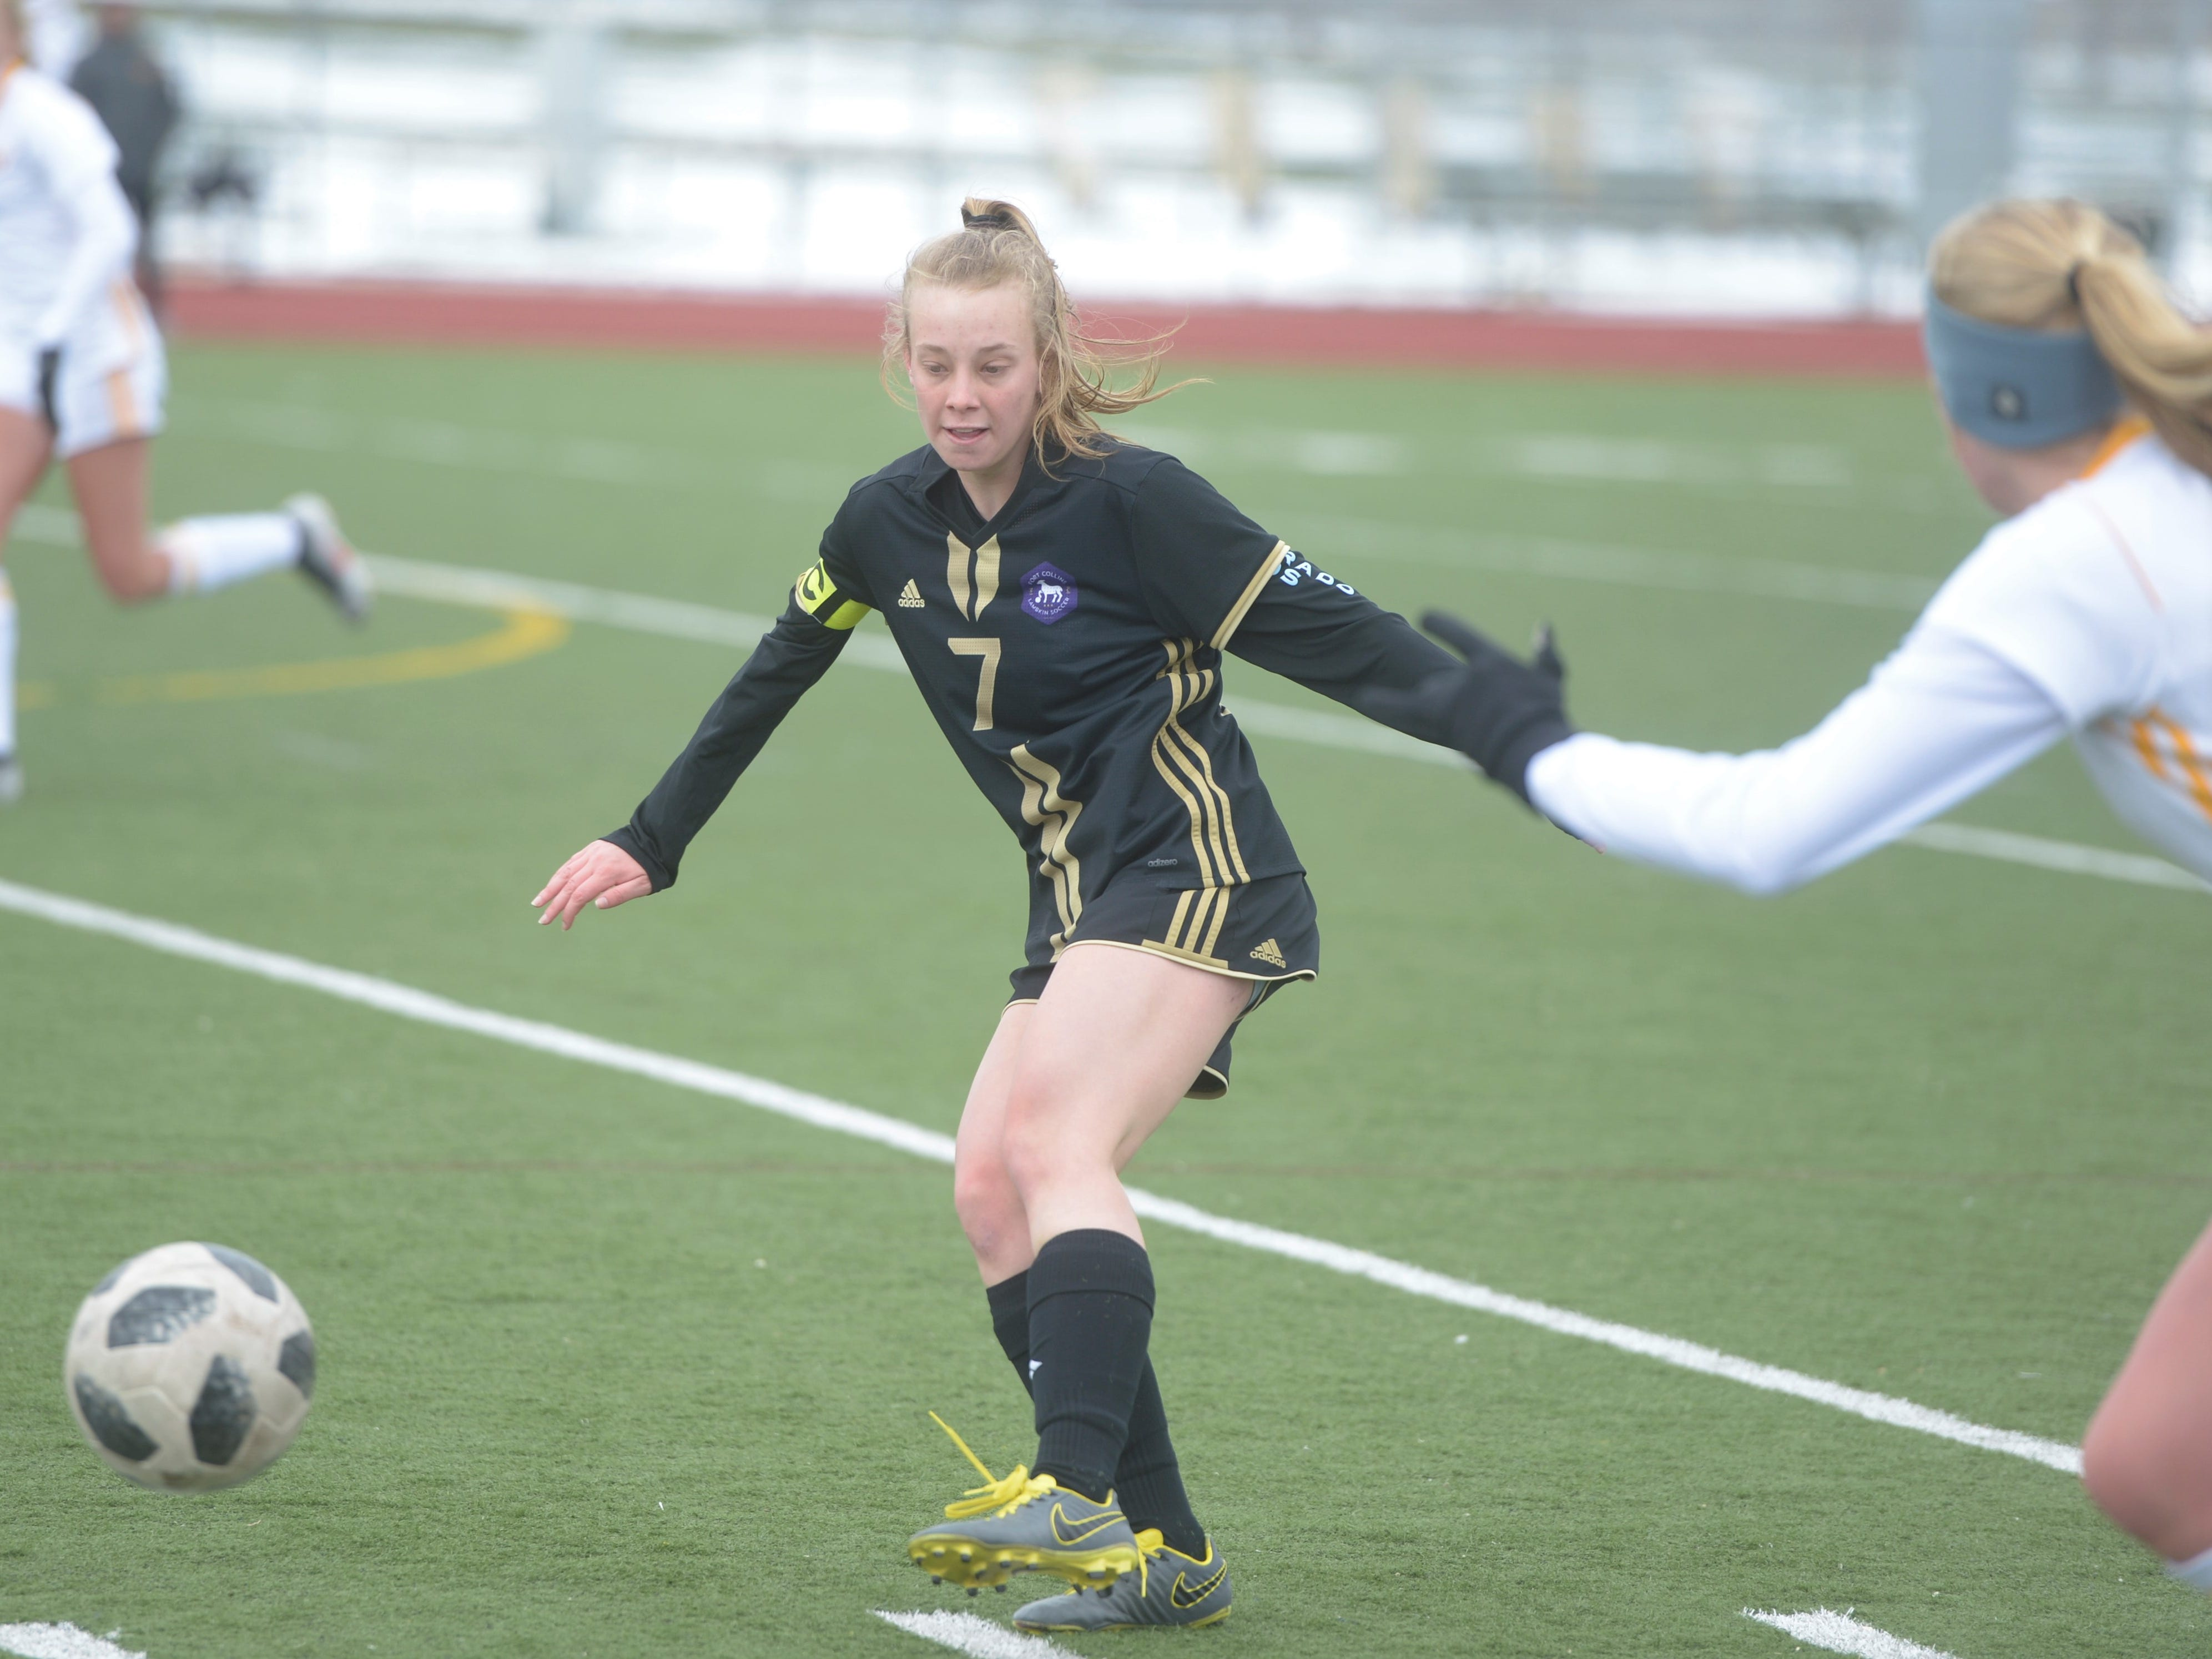 Fort Collins soccer player Gracie Rademacher passes the ball during a game against Windsor on Saturday, April 13, 2019 at Fossil Ridge. Windsor won 3-0.